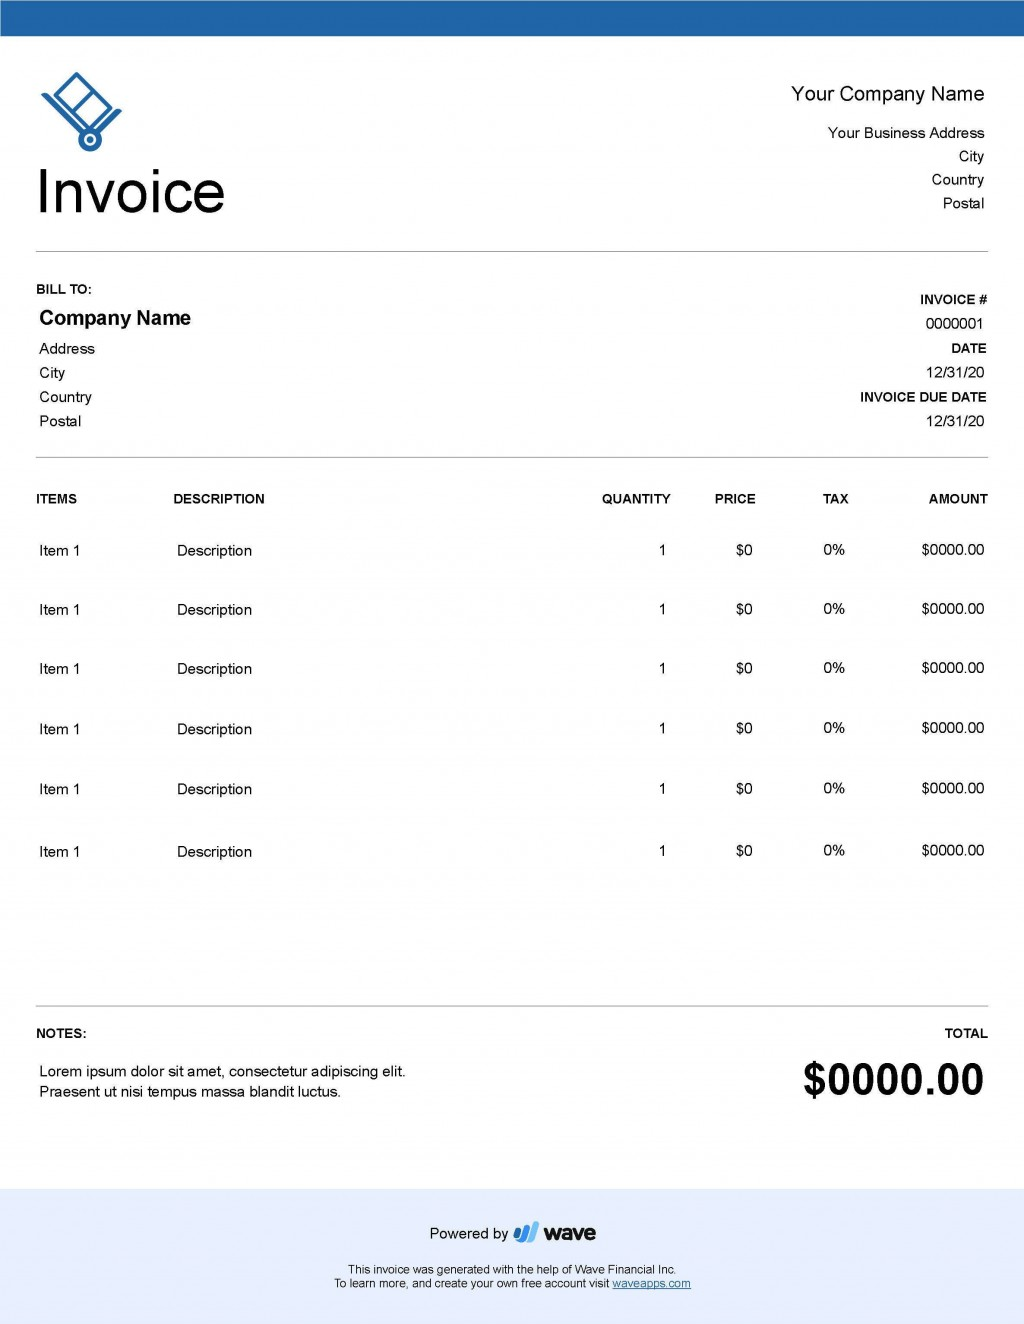 004 Unforgettable Service Invoice Template Free Concept  Rendered Word Auto DownloadLarge